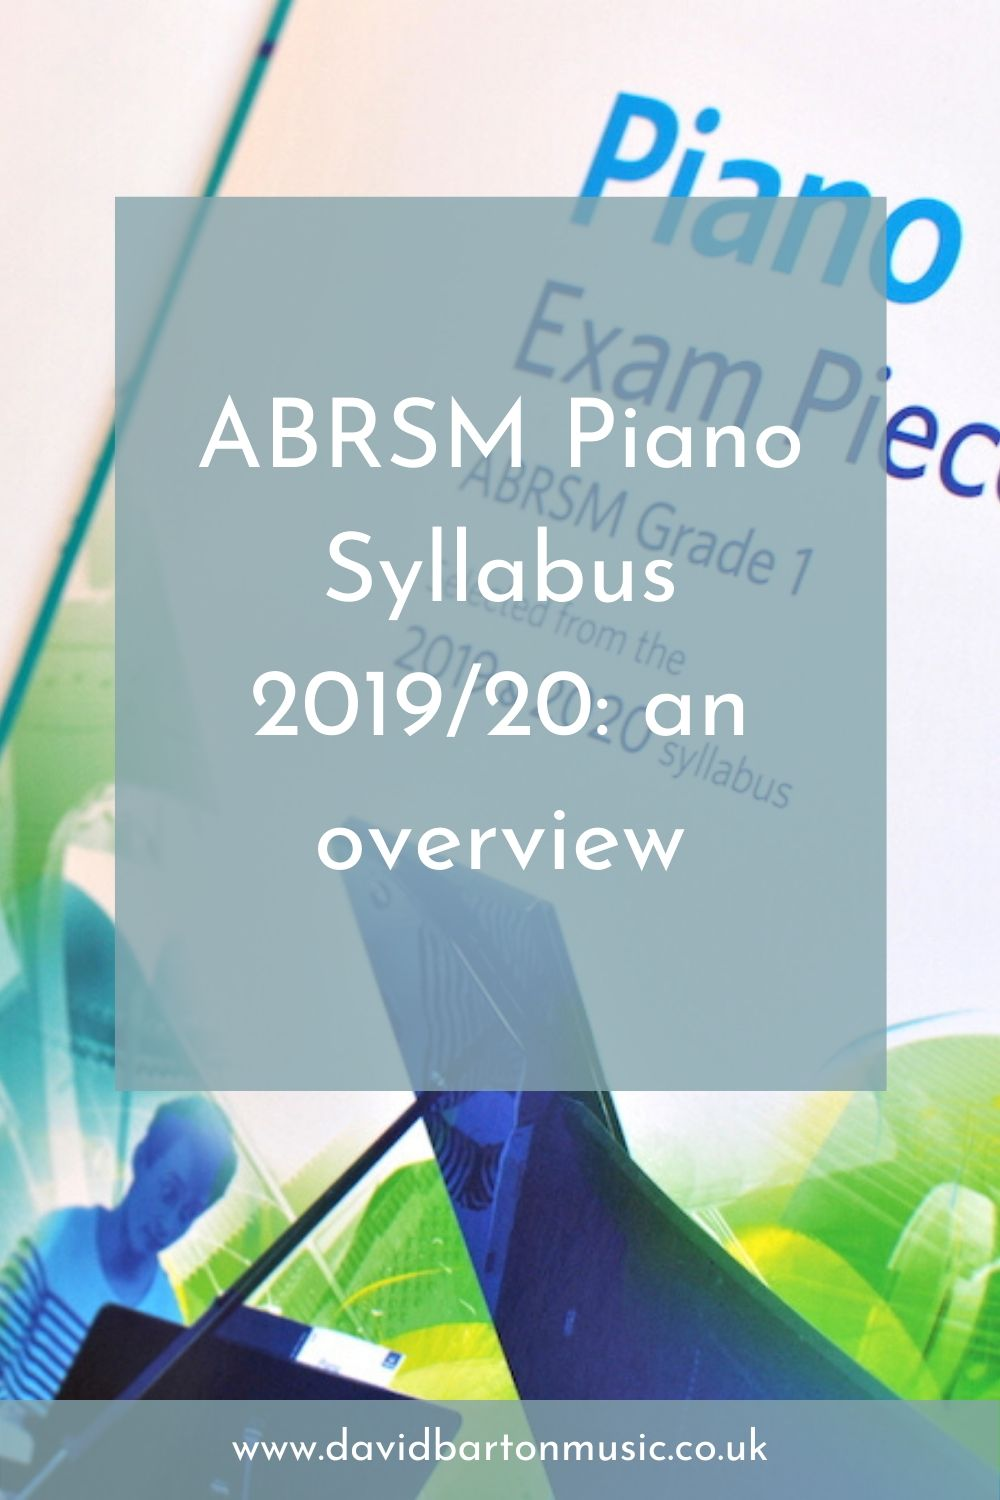 ABRSM Piano Syllabus 2019/20: an overview - Pinterest graphic